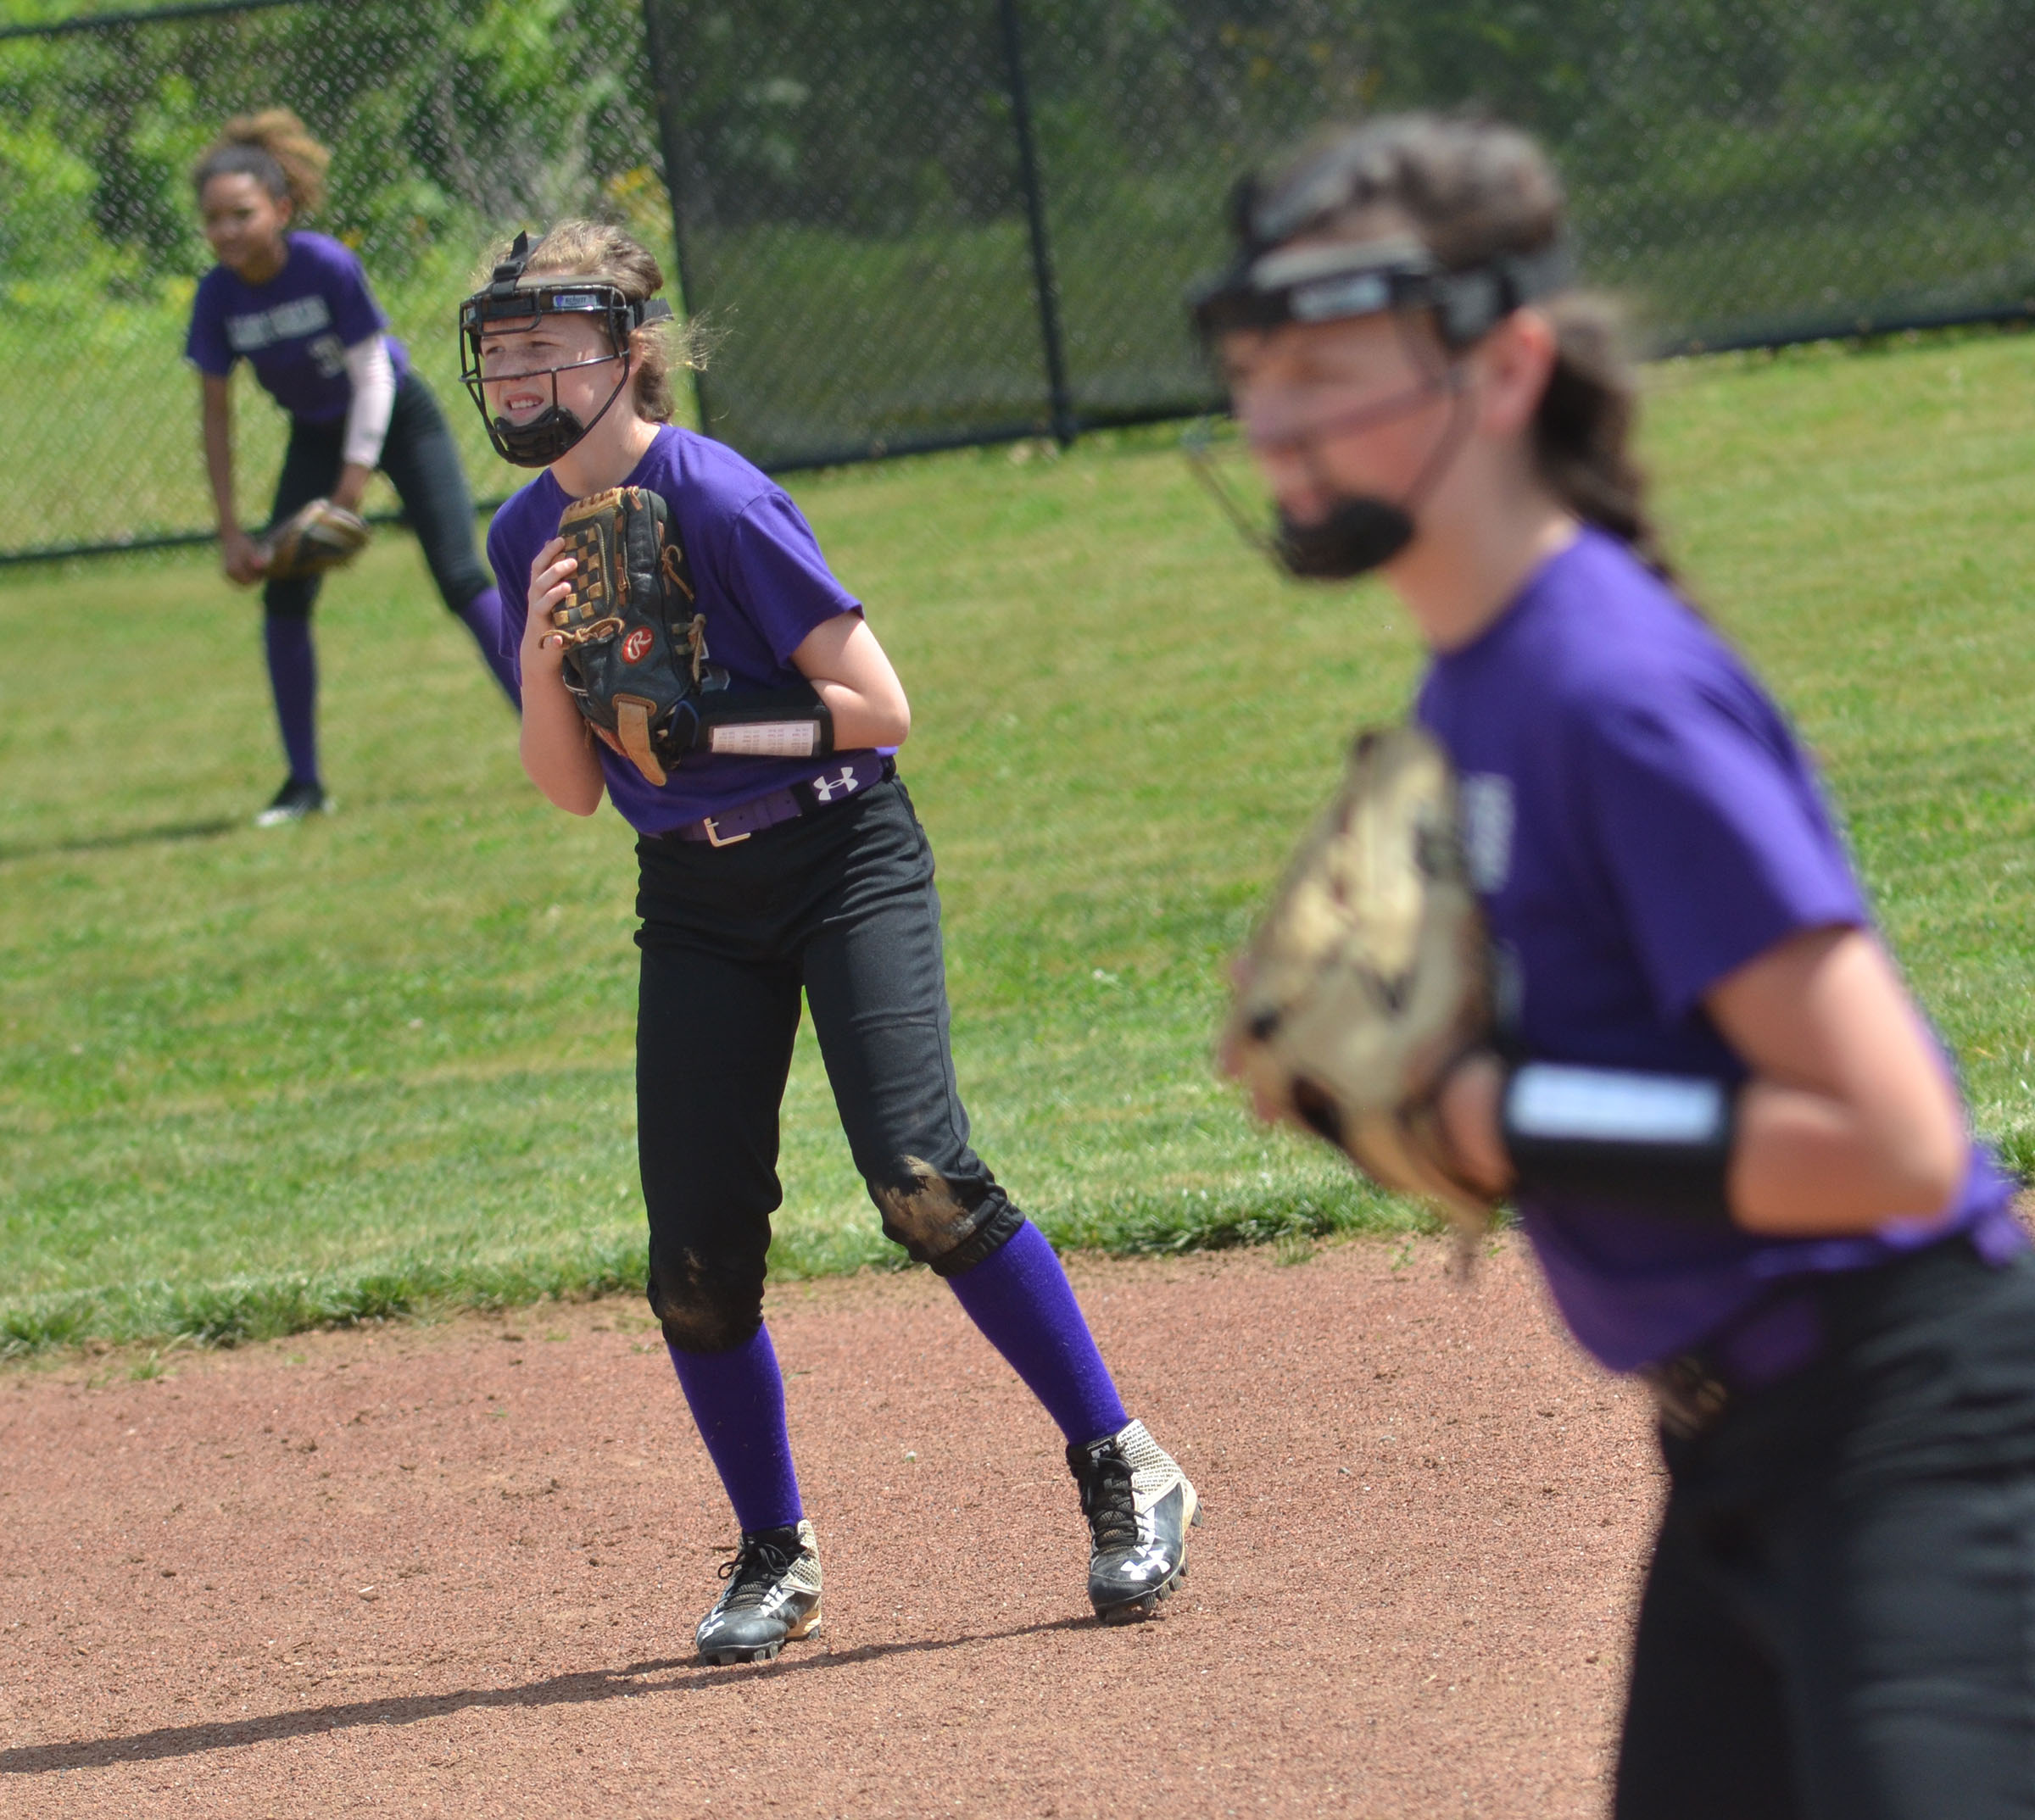 CMS sixth-grader Dakota Slone and her teammates watch the batter.